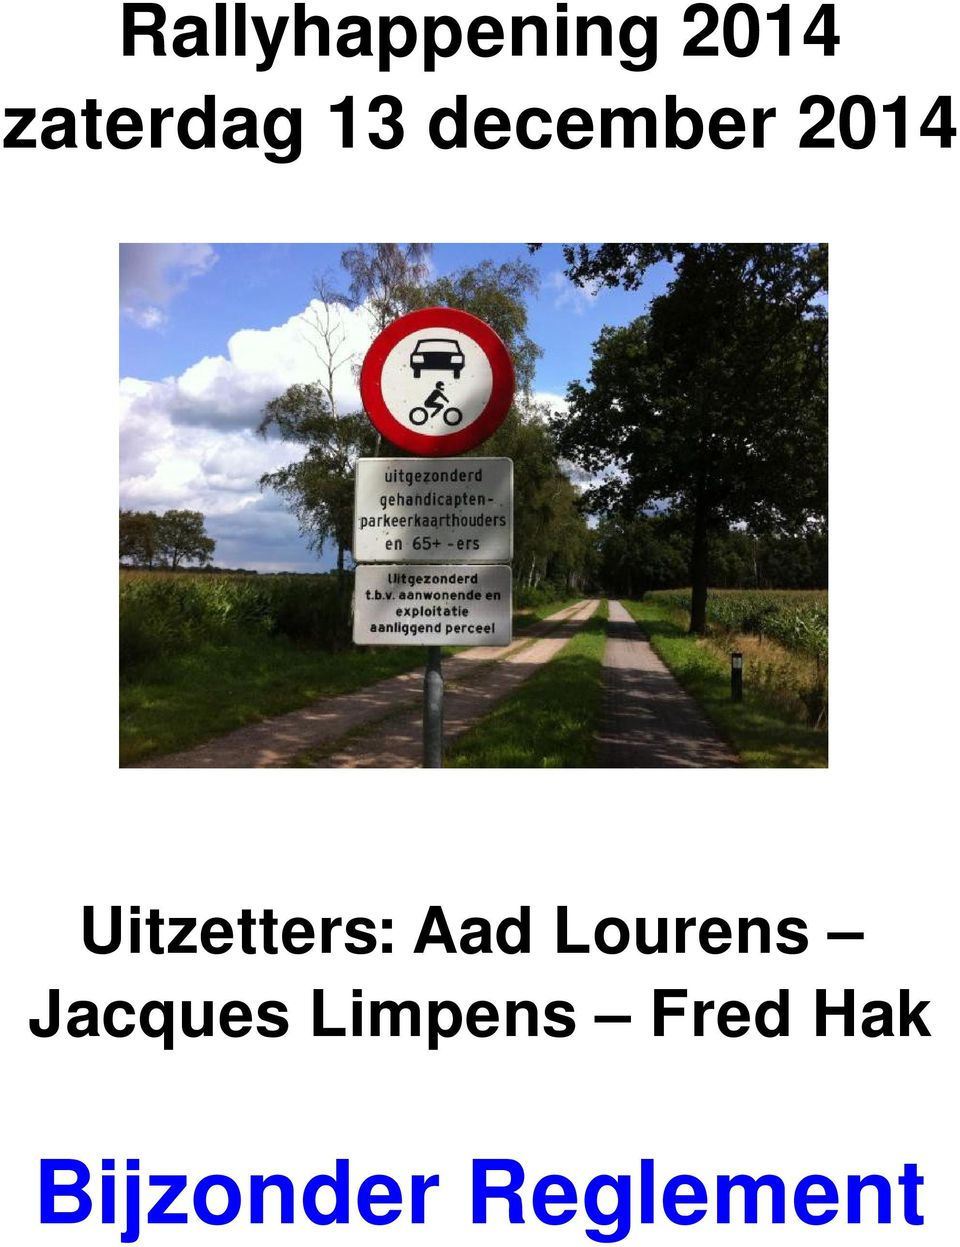 Aad Lourens Jacques Limpens